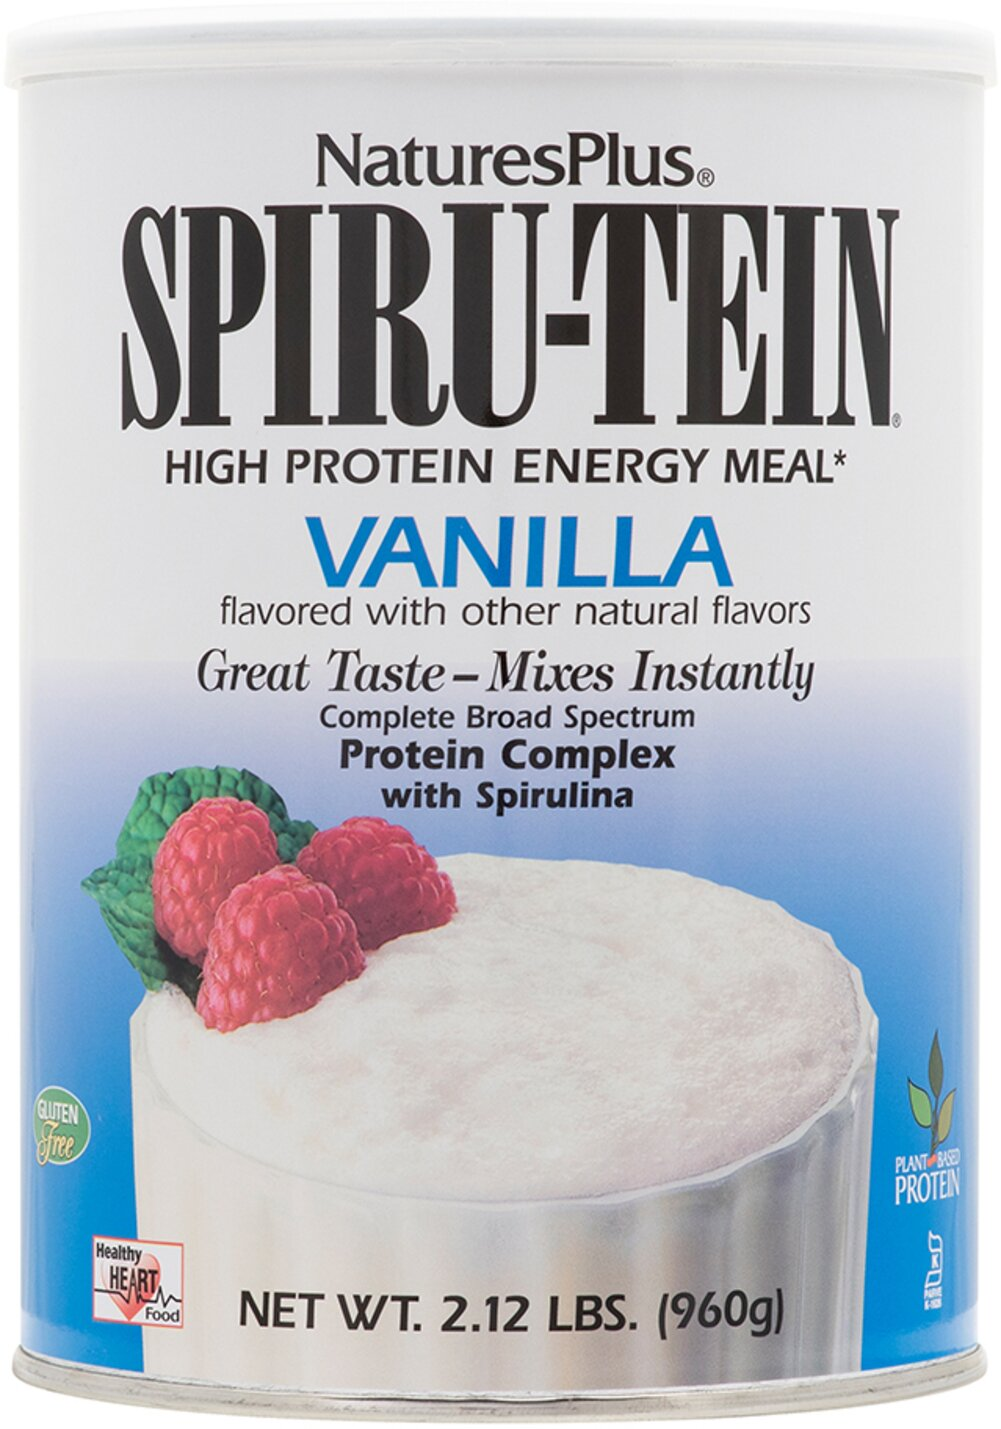 Spiru-Tein Vanilla <p><b>From the Manufacturer's Label: </p></b><p>Rich in flavor and nutrition--that's Spiru-tein! One of life's true pleasures is enjoying a delicious treat you know is good for you in every way. Nature's Plus is especially proud of its entire line of Spiru-tein products. Low in calories, with zero fat, Spiru-tein delivers a healthy infusion of plant-based protein, along with other essential nutrients.</p>  <p>Manufactur